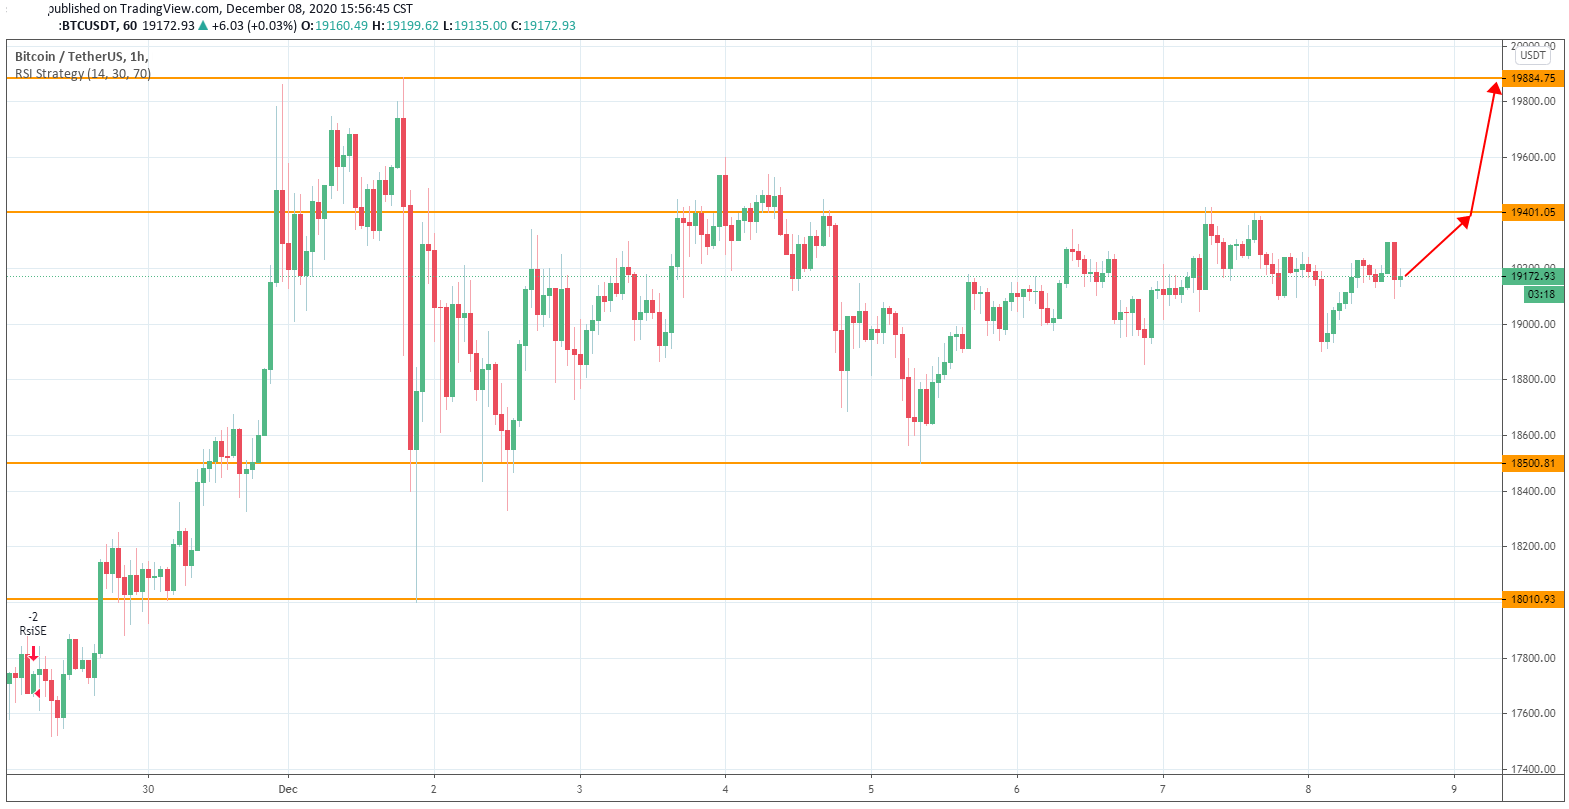 Bitcoin Seems to Wait for the New Stimulus Coming on This Friday as it Moves Quietly